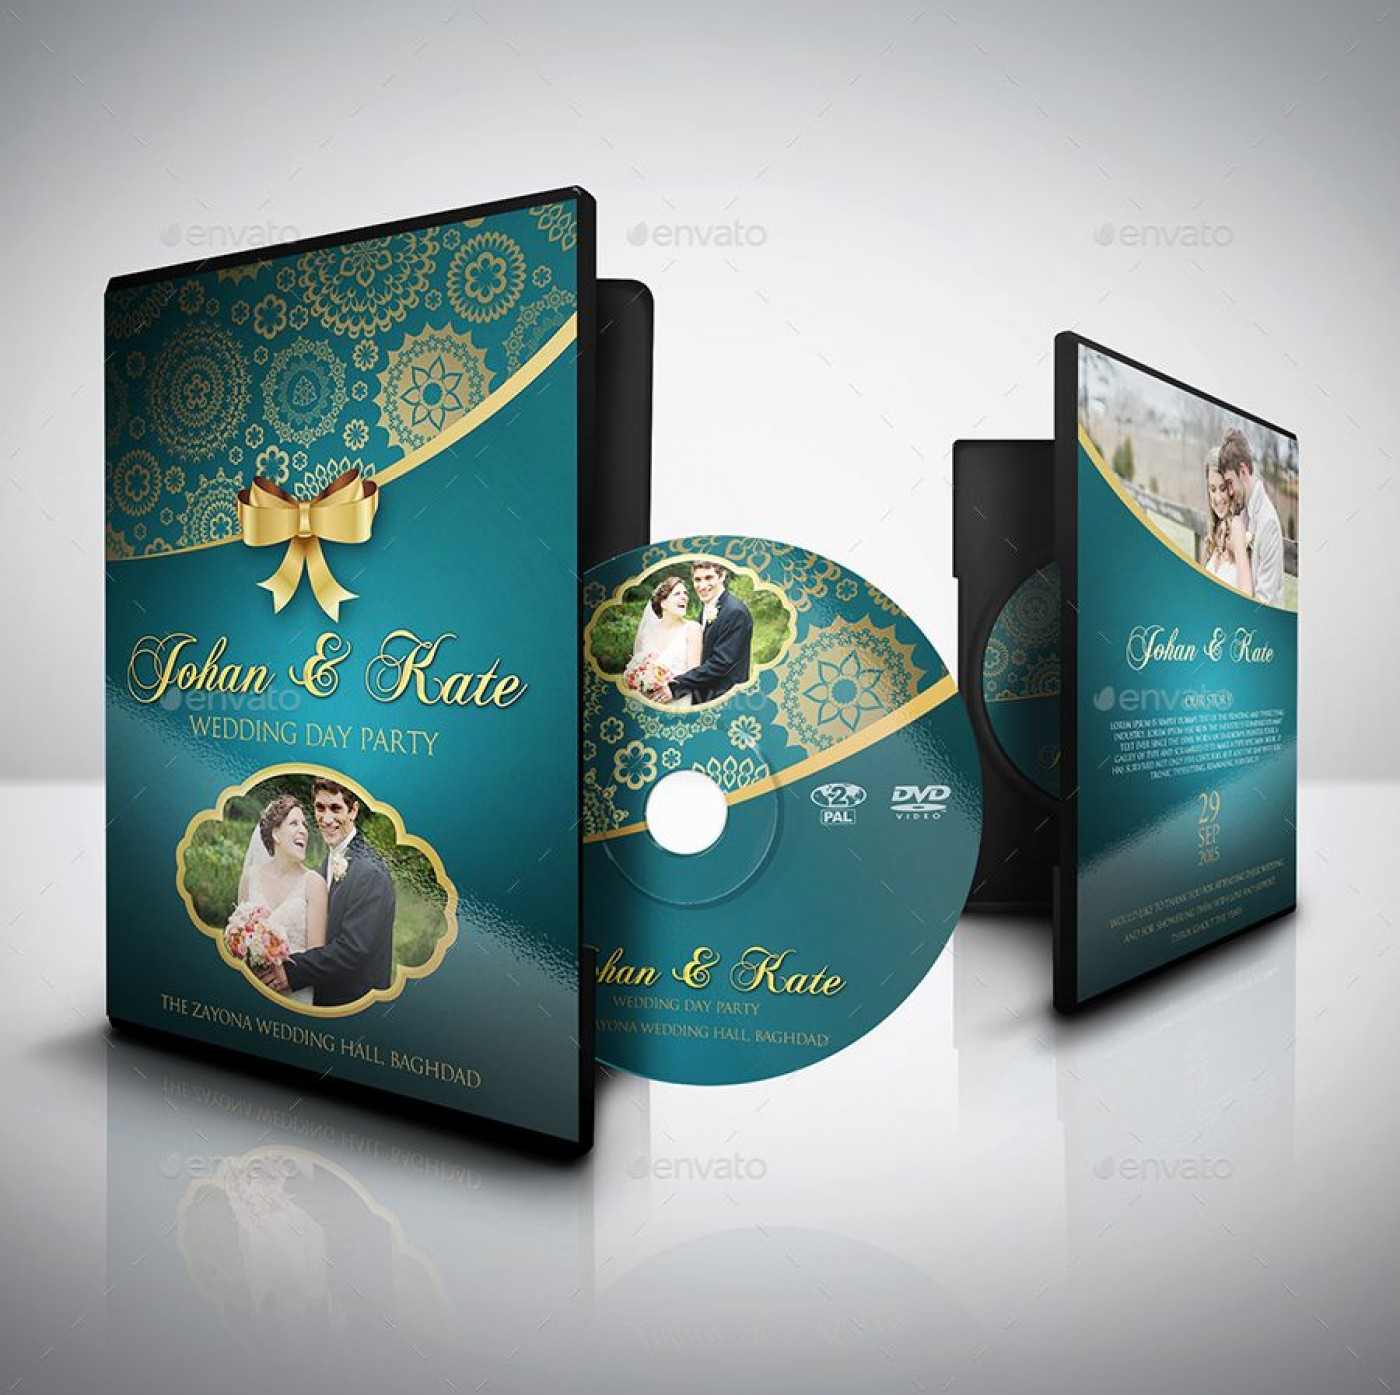 000 Astounding Wedding Cd Cover Design Template Free Download Photo 1400